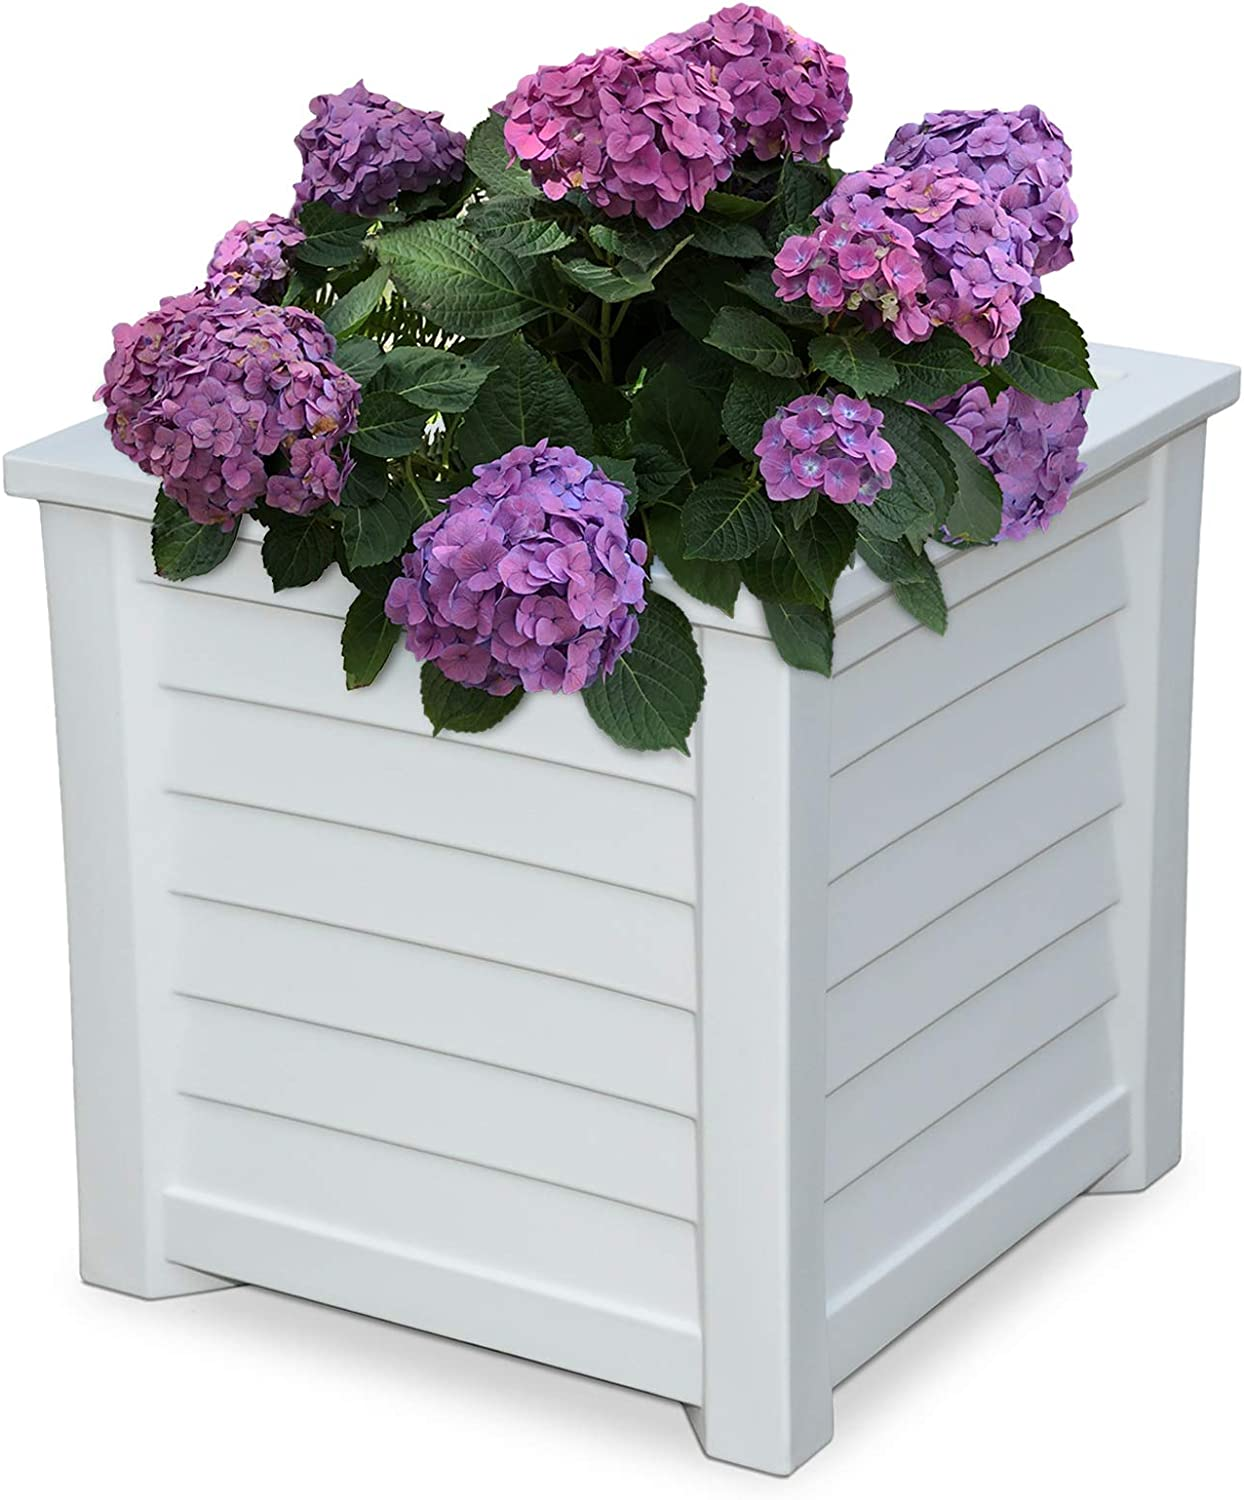 Mayne 5867-W Lakeland Square Patio Planter, 20×20, White